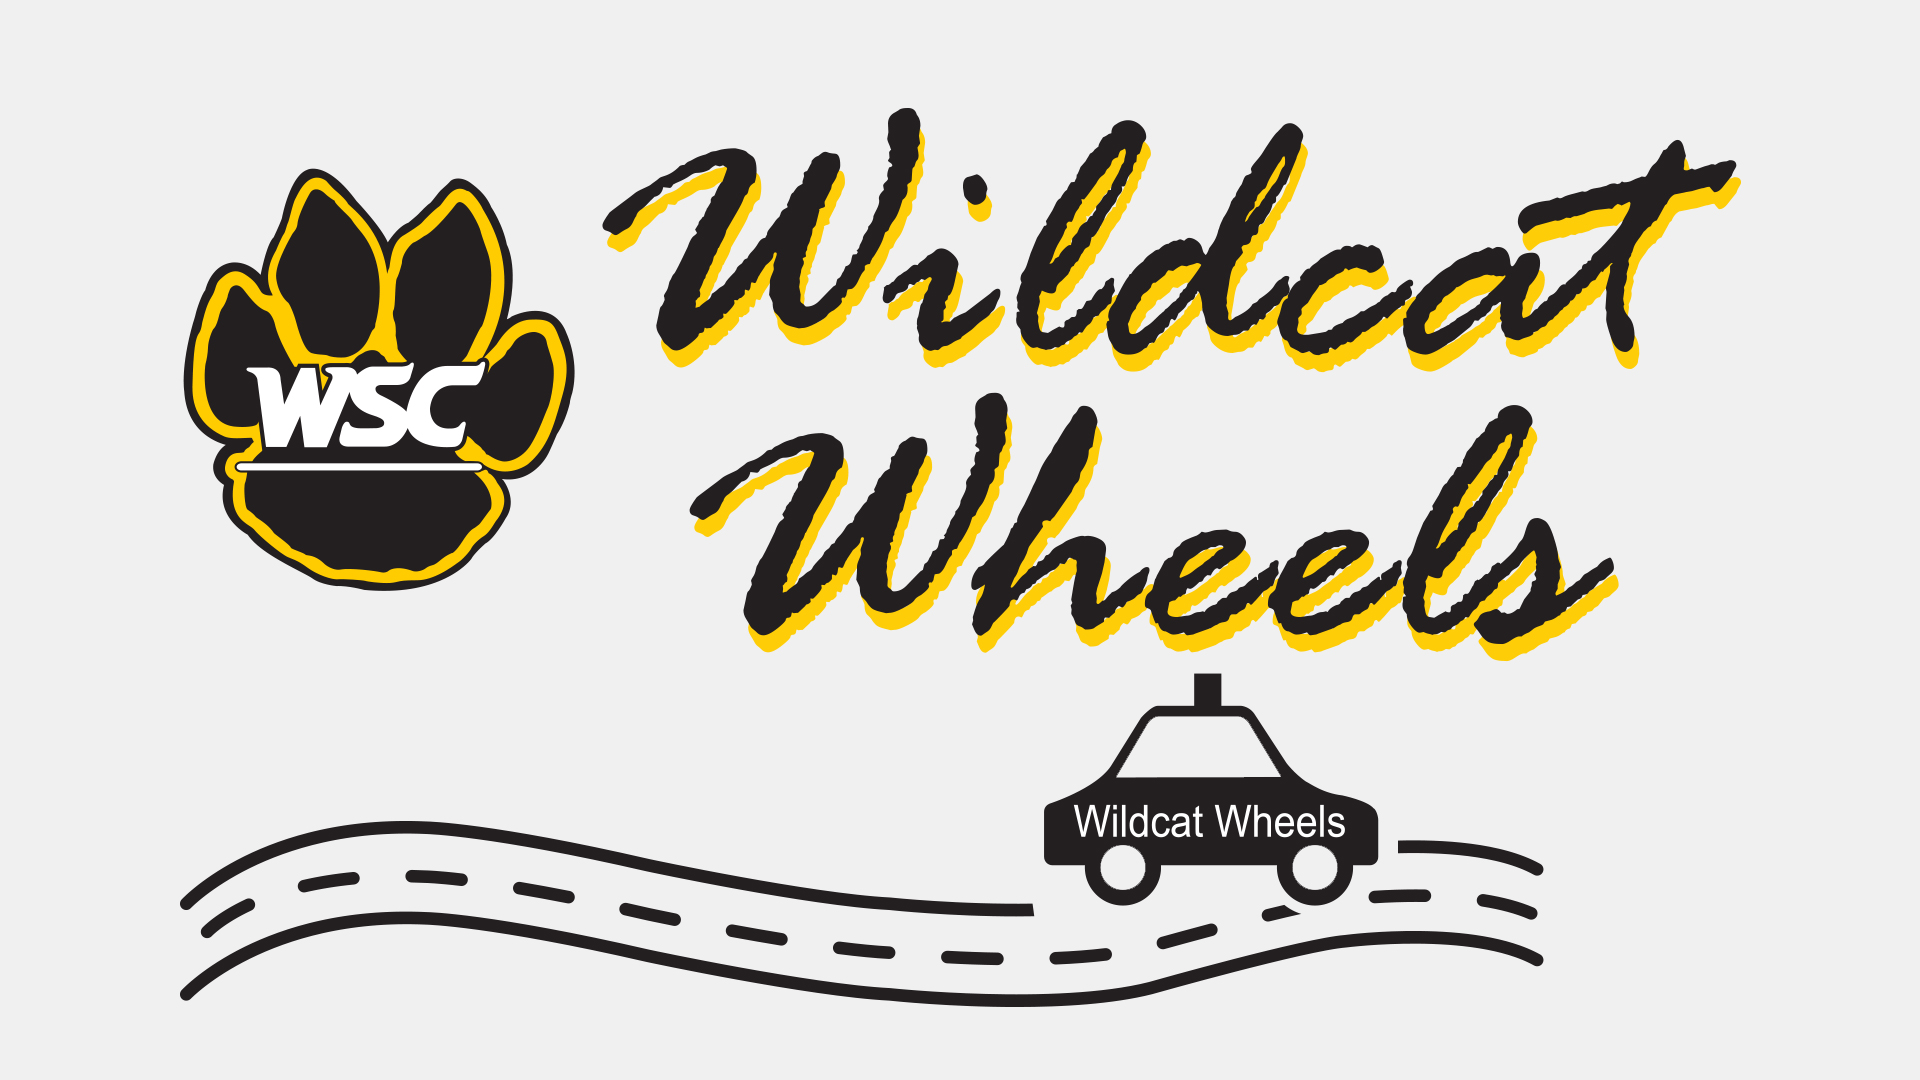 Wildcat Wheels